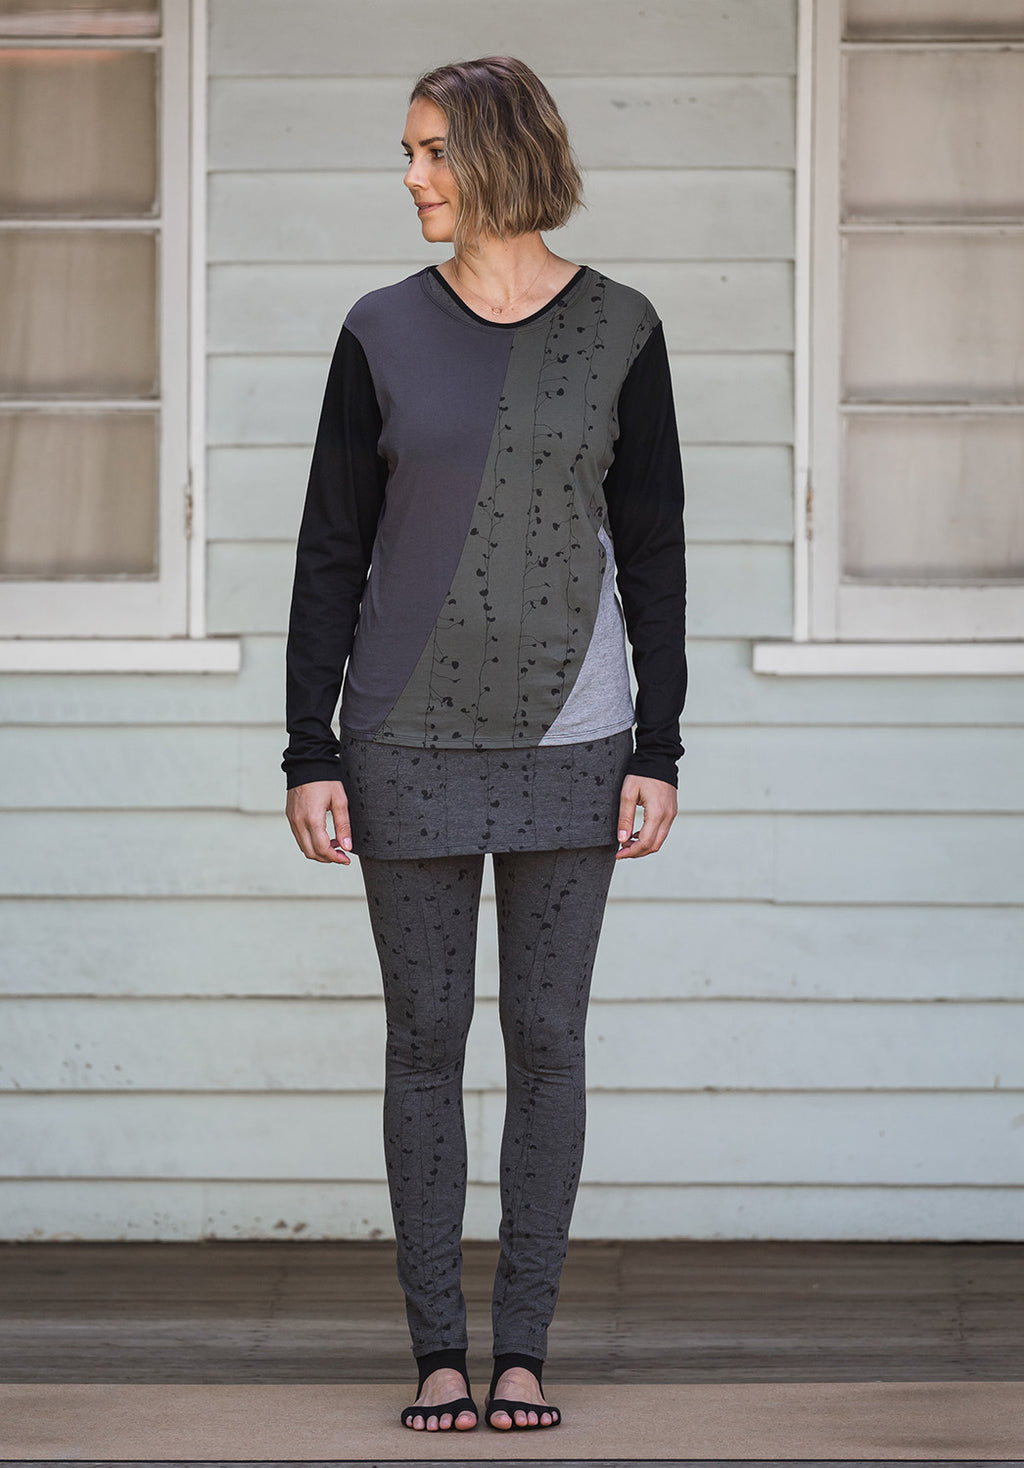 printed tops australian made, women clothing australia, womenswear australia, boutique sportswear online, cotton fashion australia,